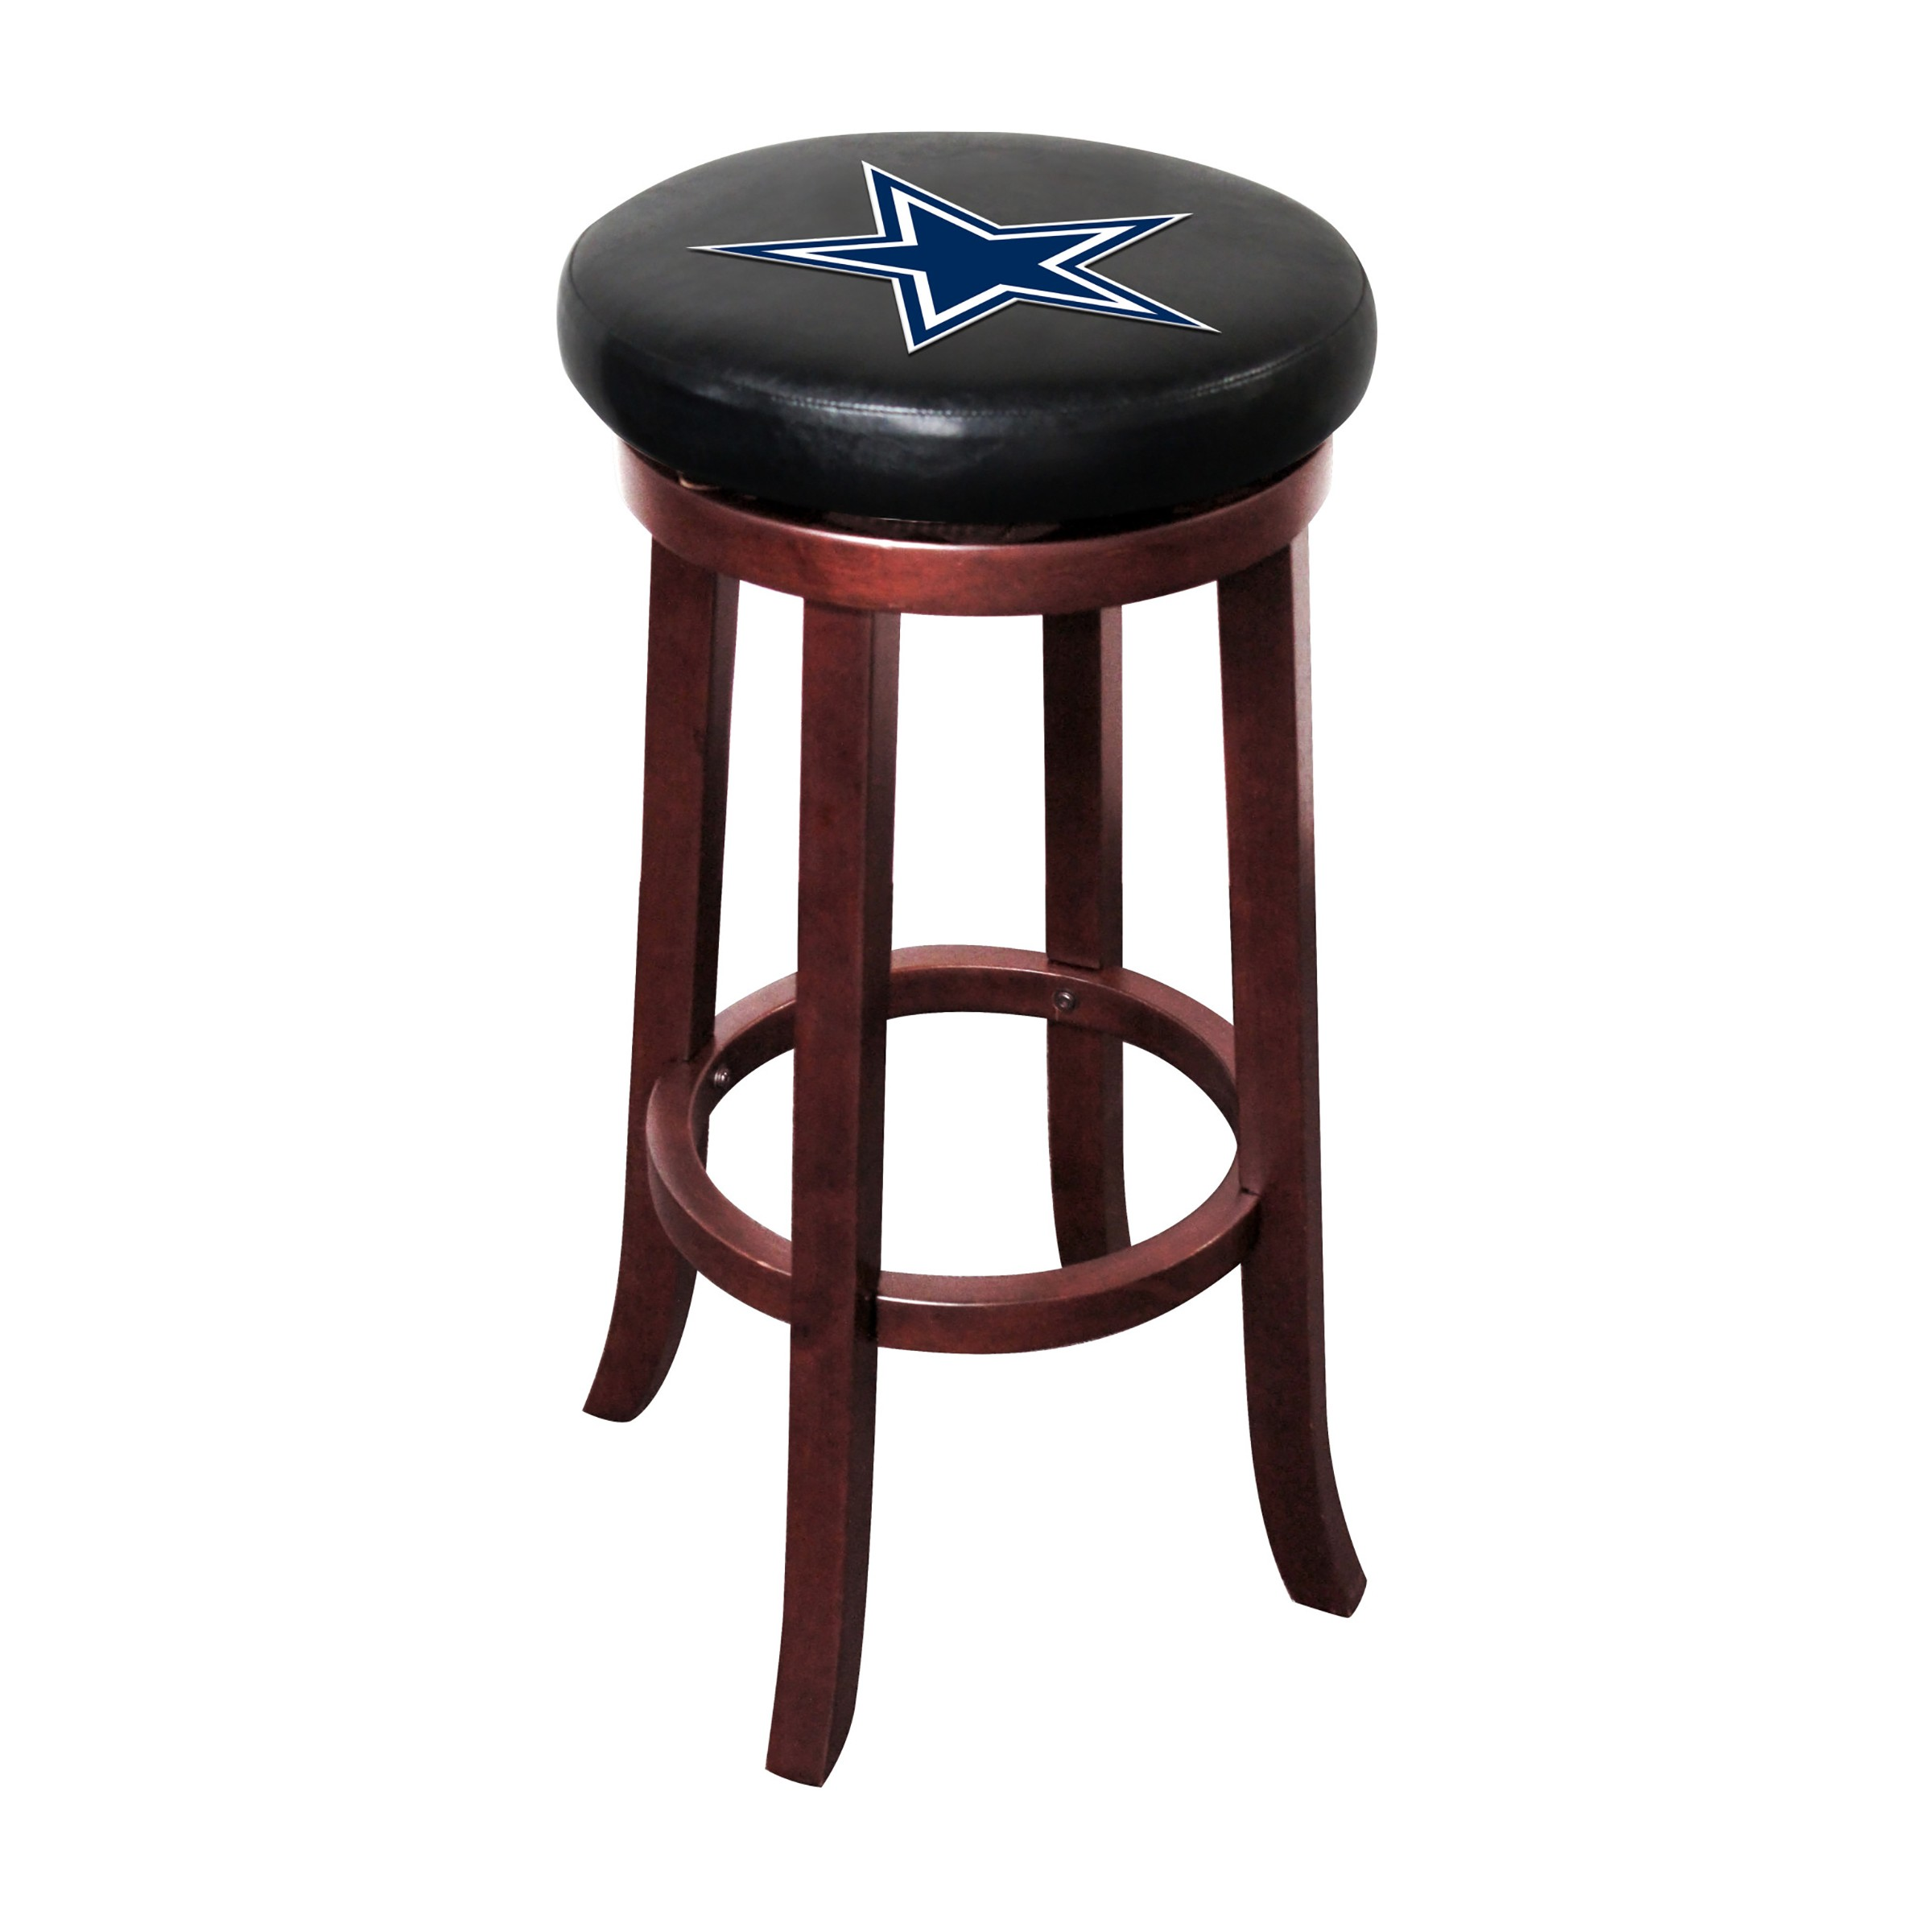 8 Nfl Dallas Cowboys Team Logo Pool Table